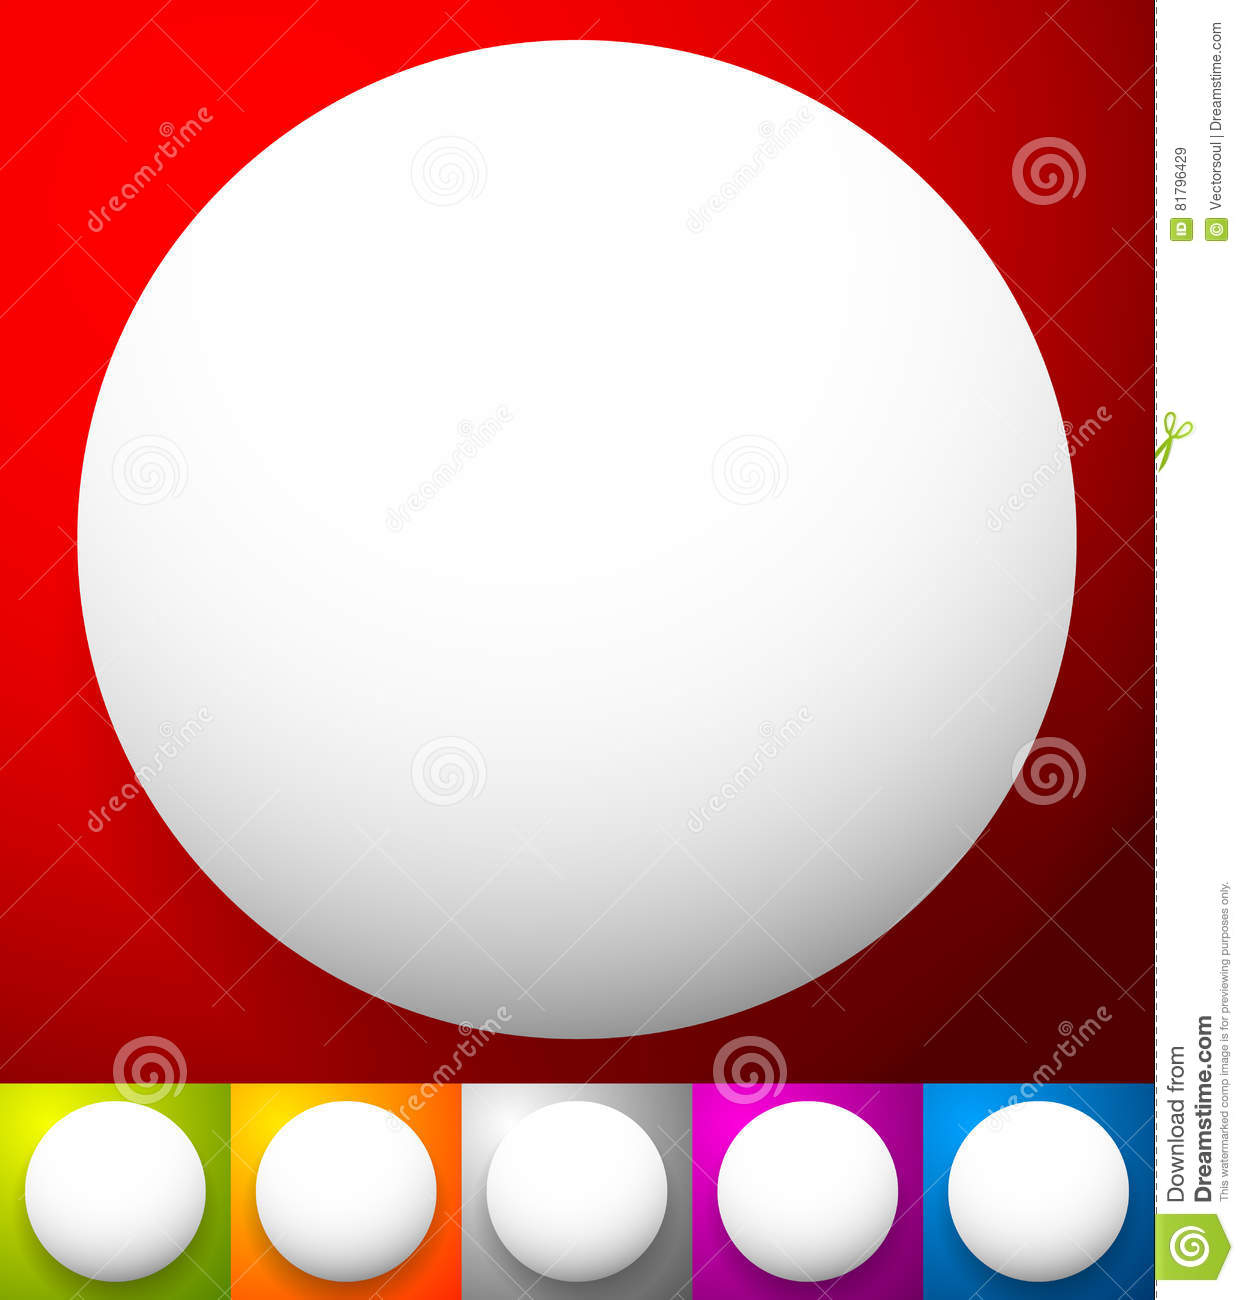 Button, Badge Shapes / Backgrounds In Several Colors Stock Vector